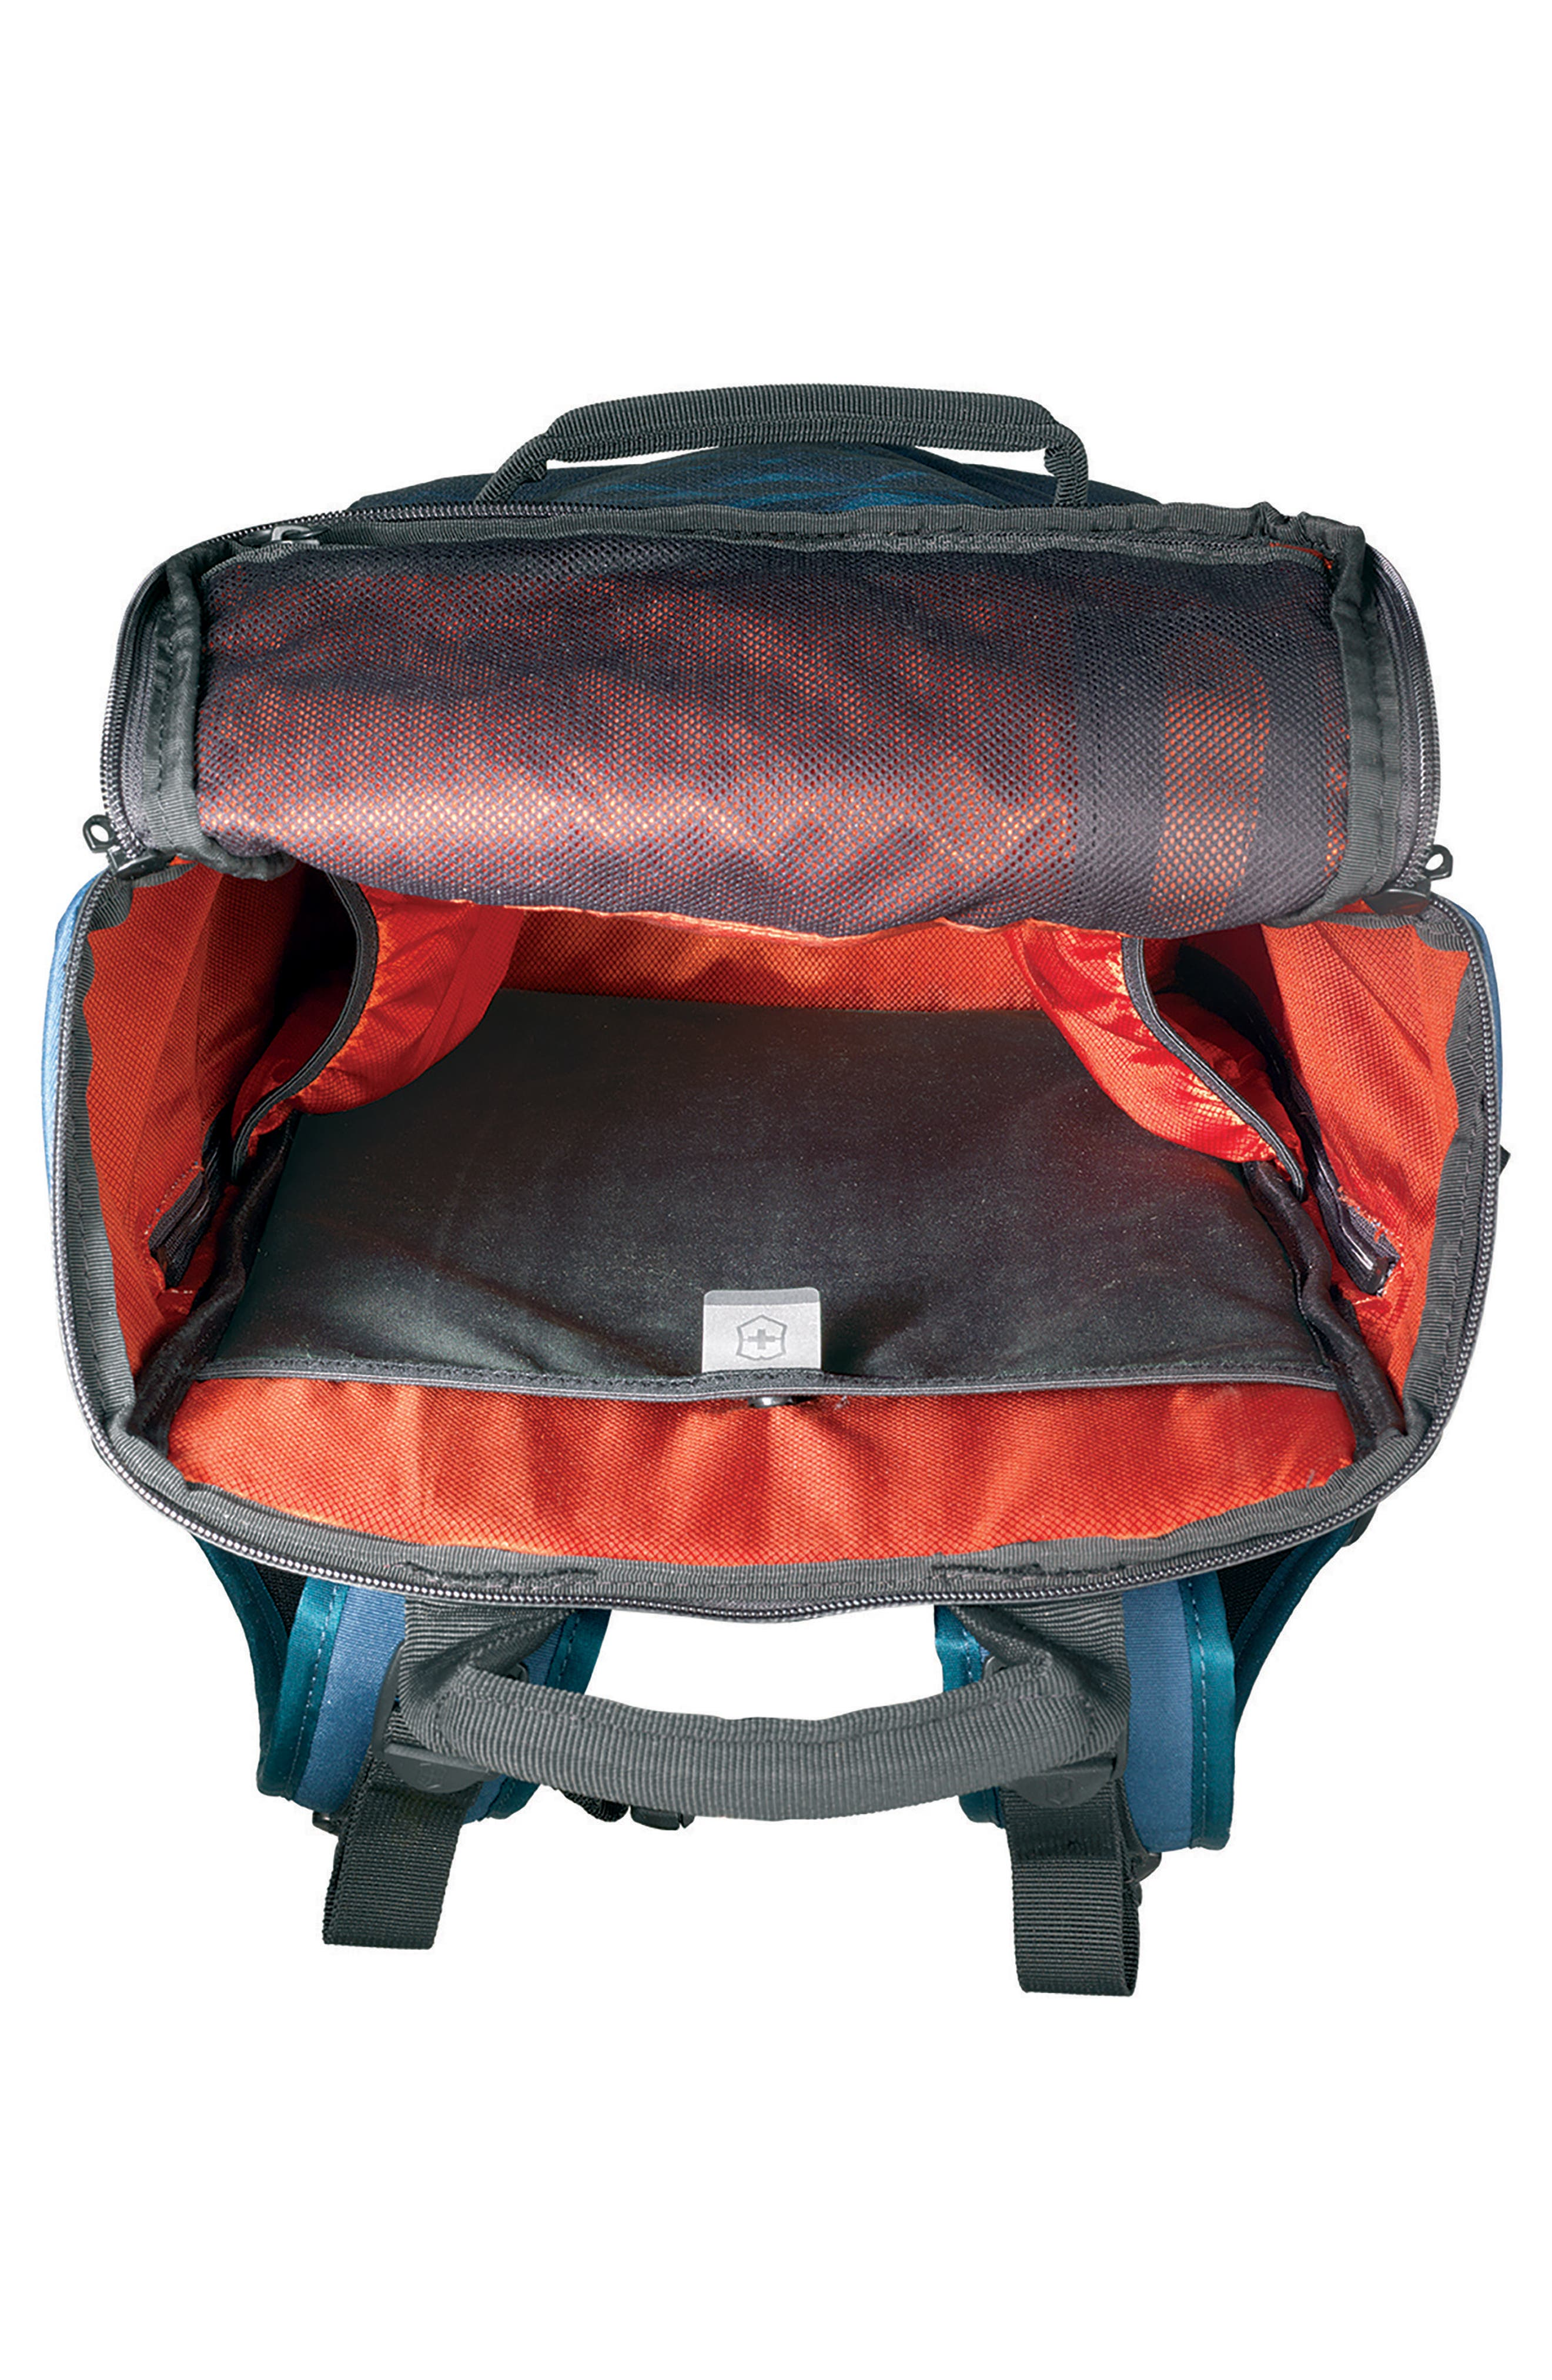 VX Touring Backpack,                             Alternate thumbnail 2, color,                             Dark Teal